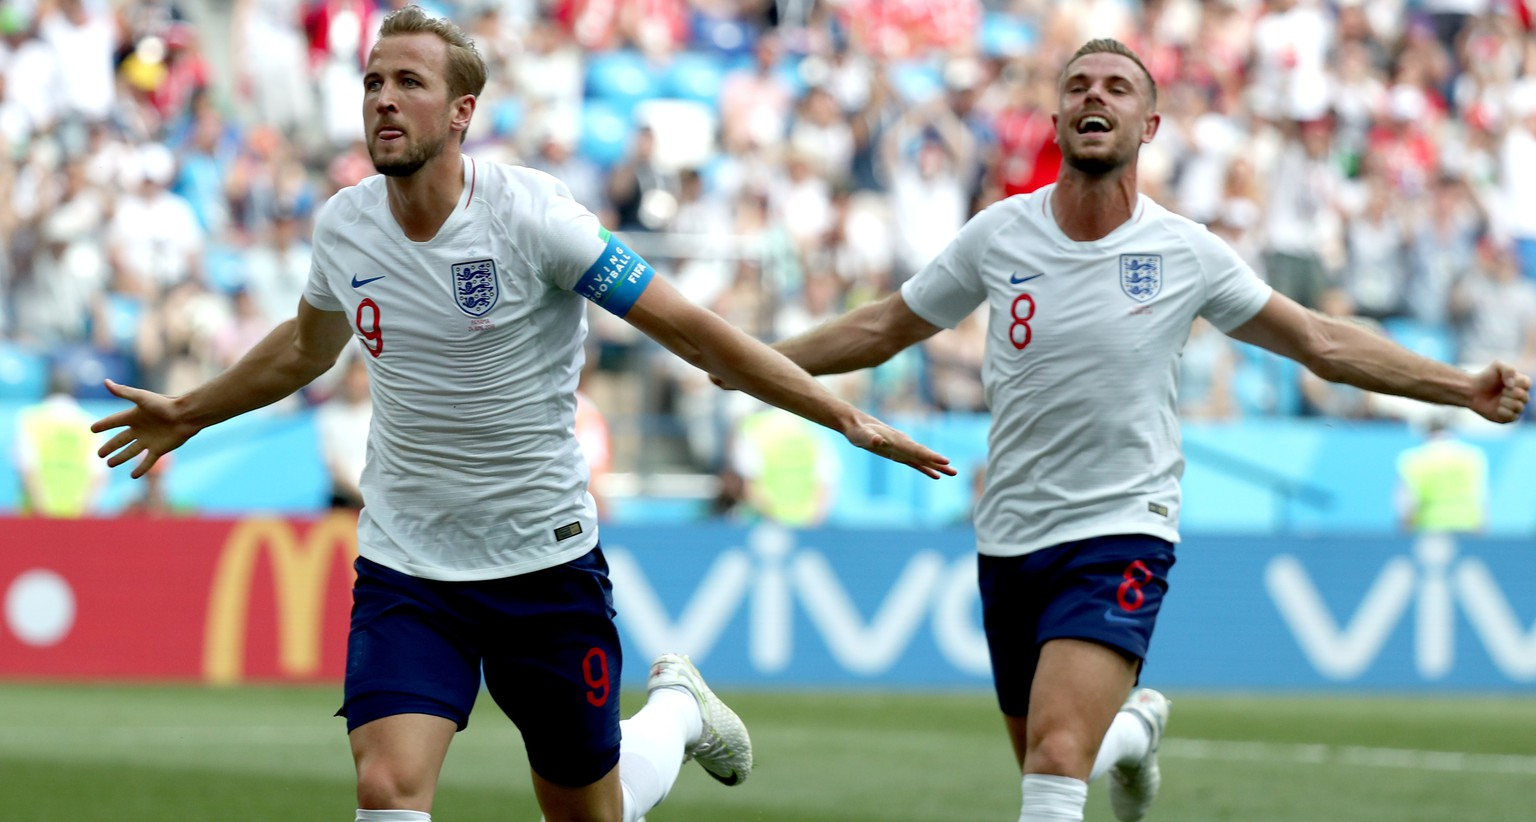 epa06835792 Harry Kane of England (L) reacts with Jordan Henderson of England after scoring the 2-0 during the FIFA World Cup 2018 group G preliminary round soccer match between England and Panama in Nizhny Novgorod, Russia, 24 June 2018.